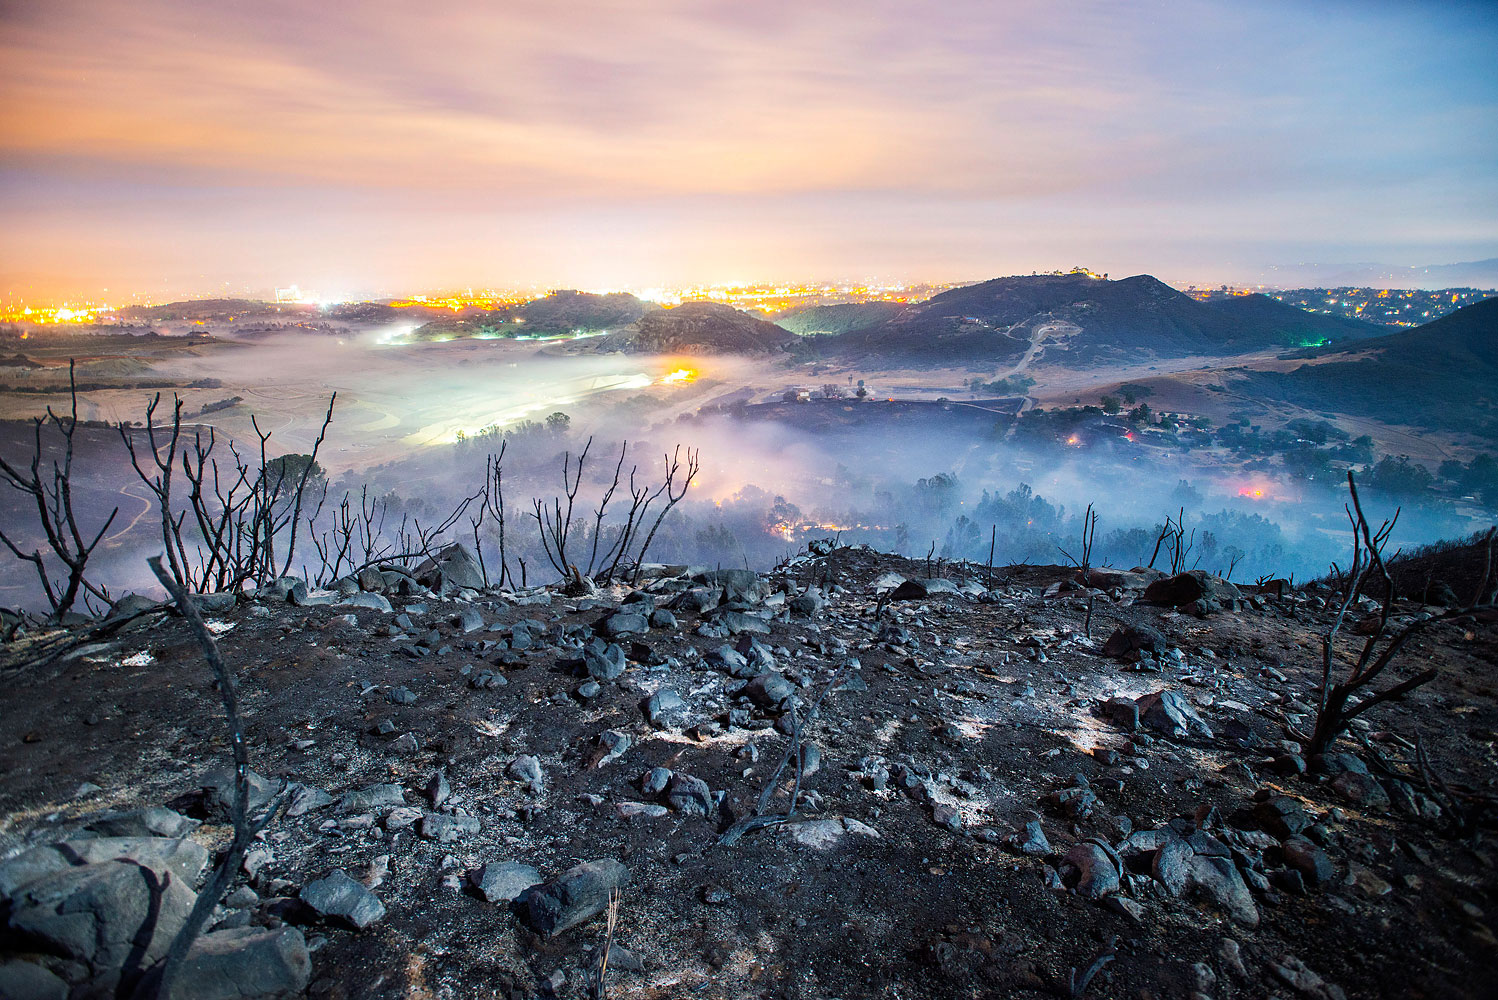 A longtime exposure shows smolderings remains of overnight fires on the hillsides of San Marcos, San Diego county, Calif., May 16, 2014.